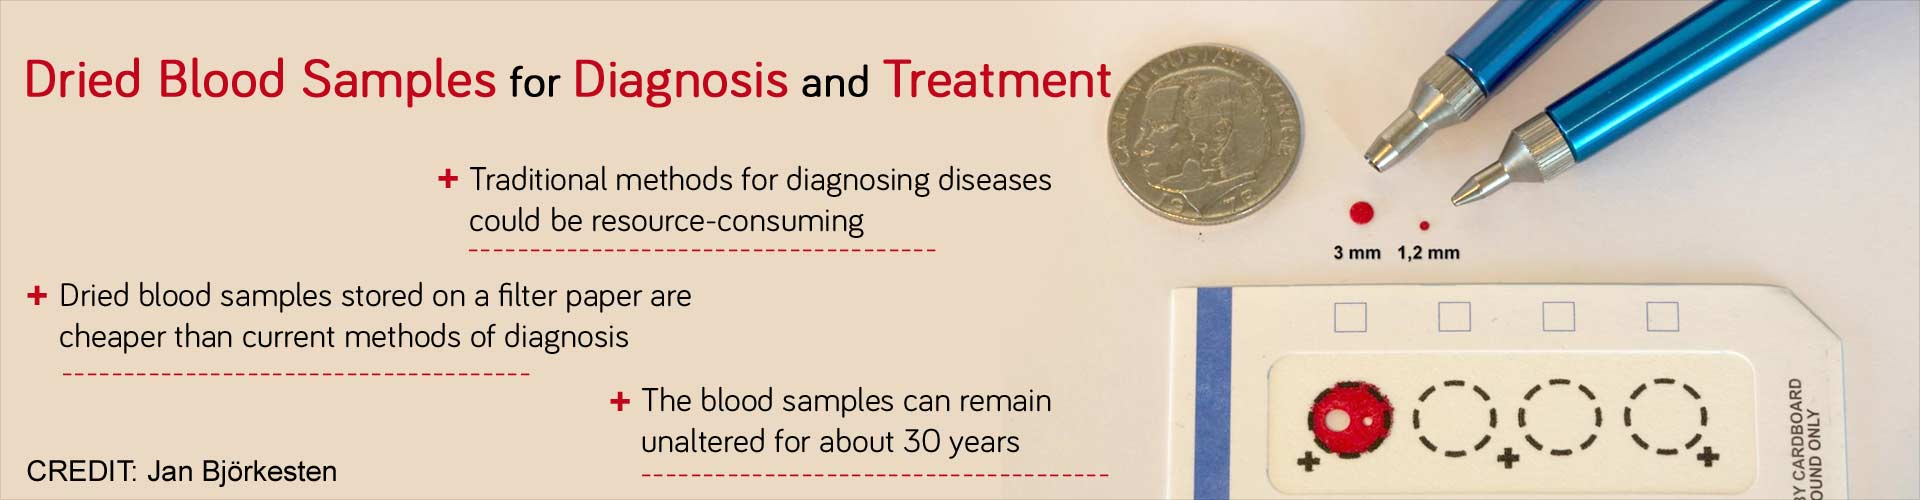 Could Dried Blood Samples Be Cheaper and Better Biomarkers for Disease Diagnosis and Treatment?